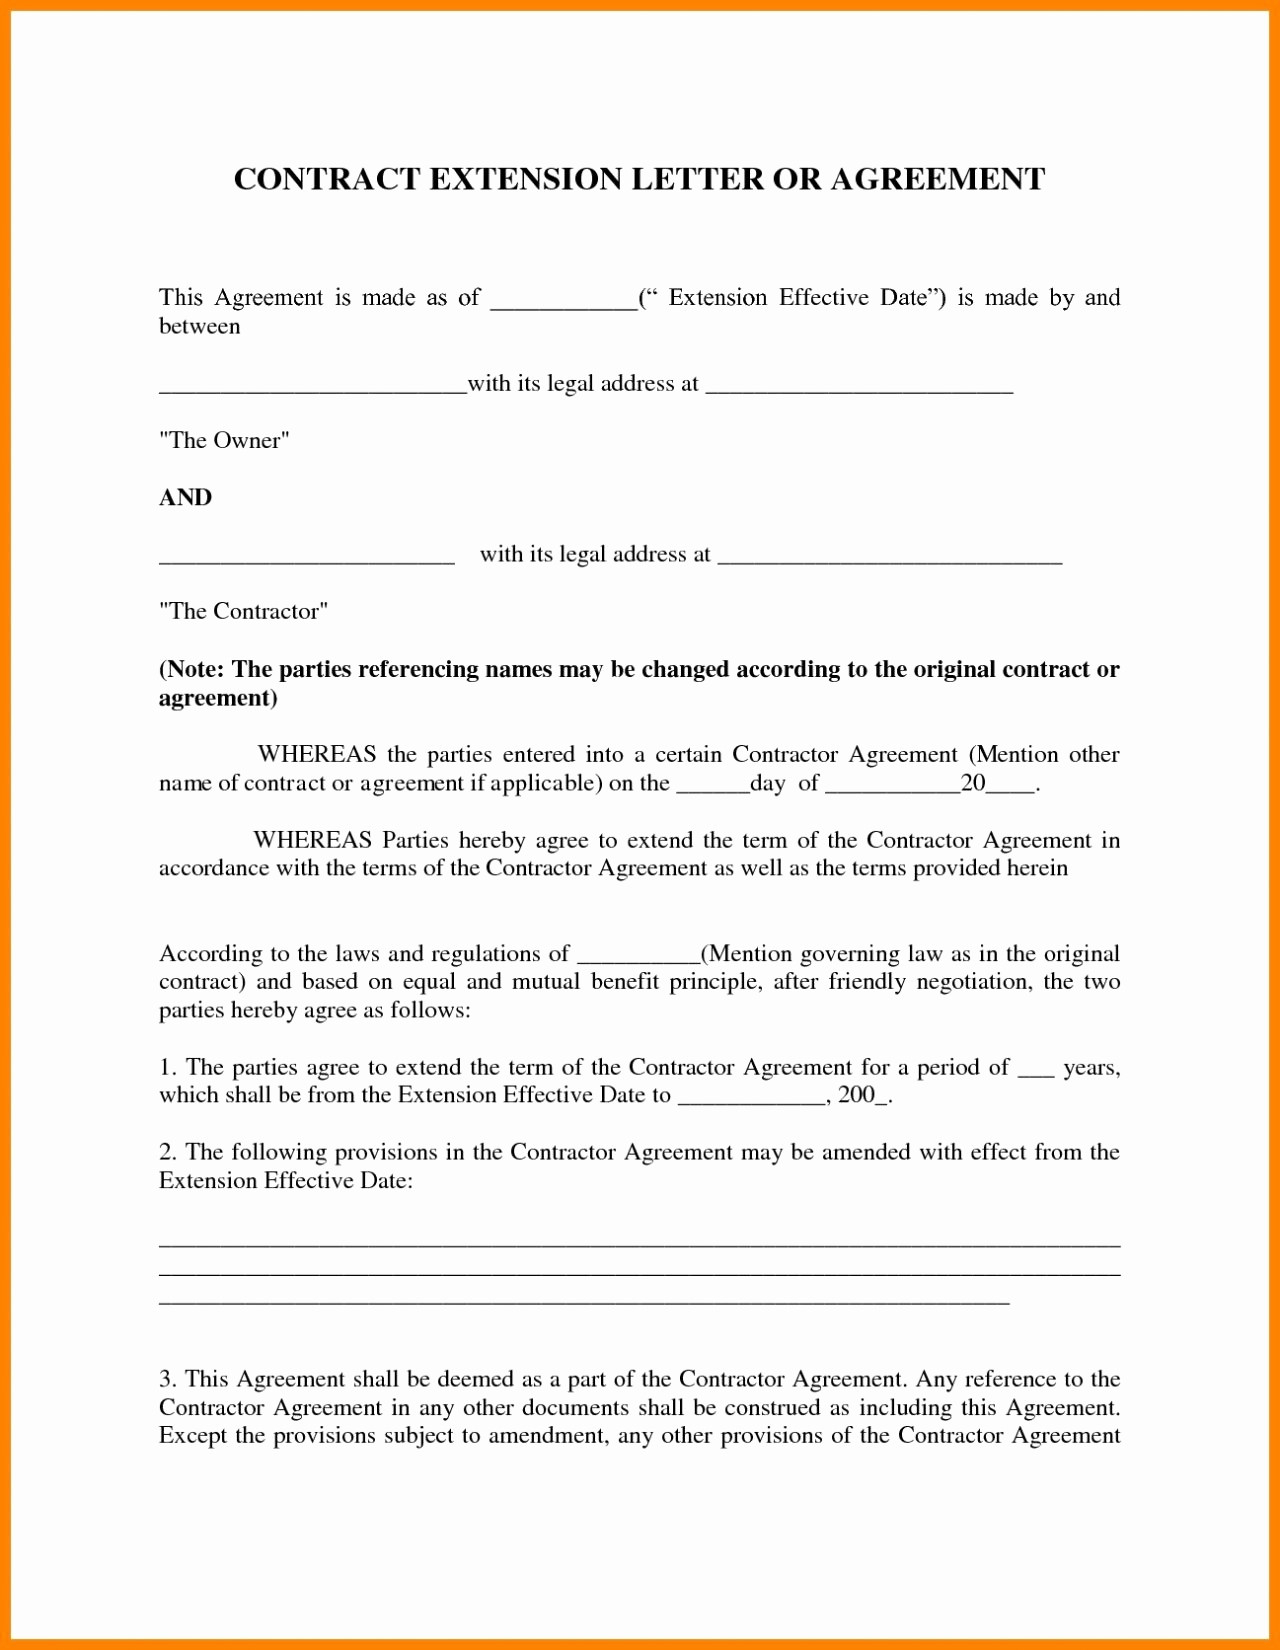 Contract Negotiation Letter Template - Contract Agreement Letter New Free Parent Child Contract Templates